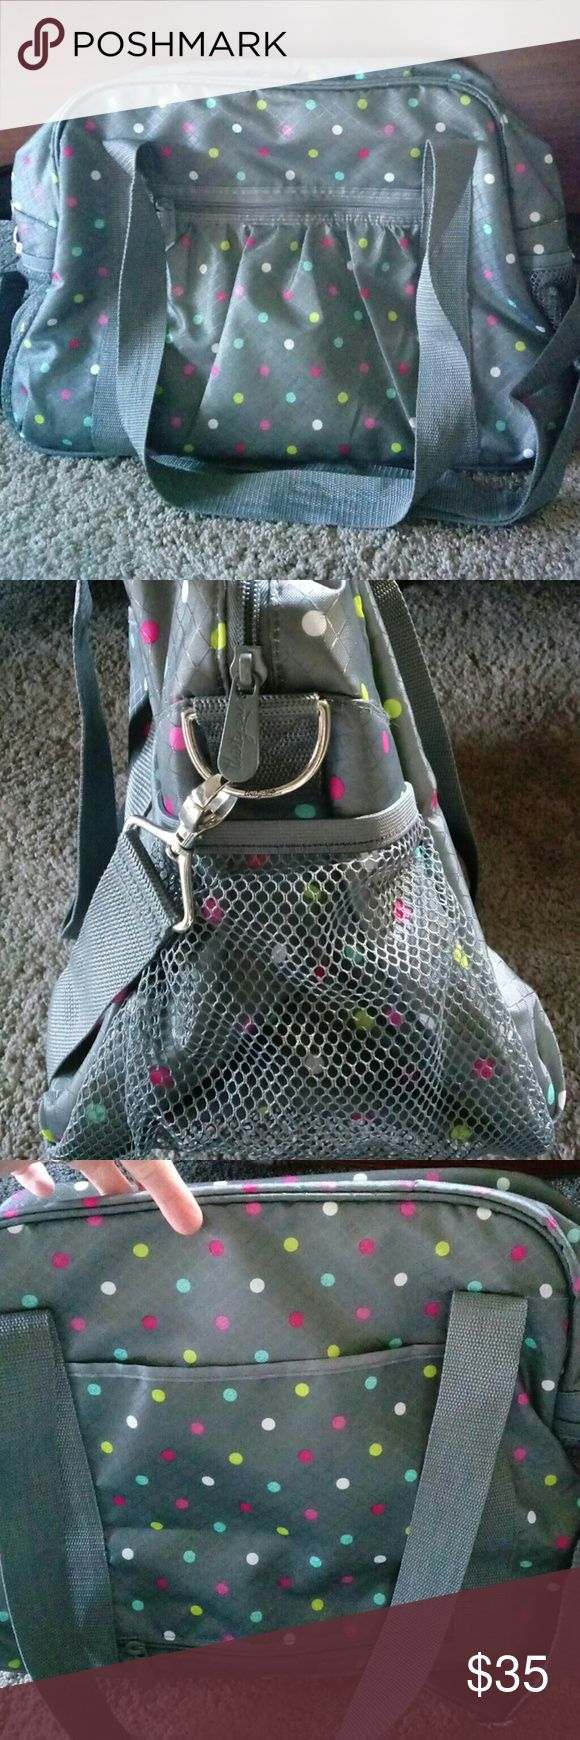 Weekender/Exercise Bag Fun Travel bag! Amazing Like New condition!! Exterior features 2 side mesh pockets, one from zipper pocket and another zipper pocket to fit right over your rolling suitcase handle! Interior features a large pocket, 2 flat pockets along with a place to put your earrings! Take this on your next adventure by Thirty-One!! Thirty-One Bags Travel Bags